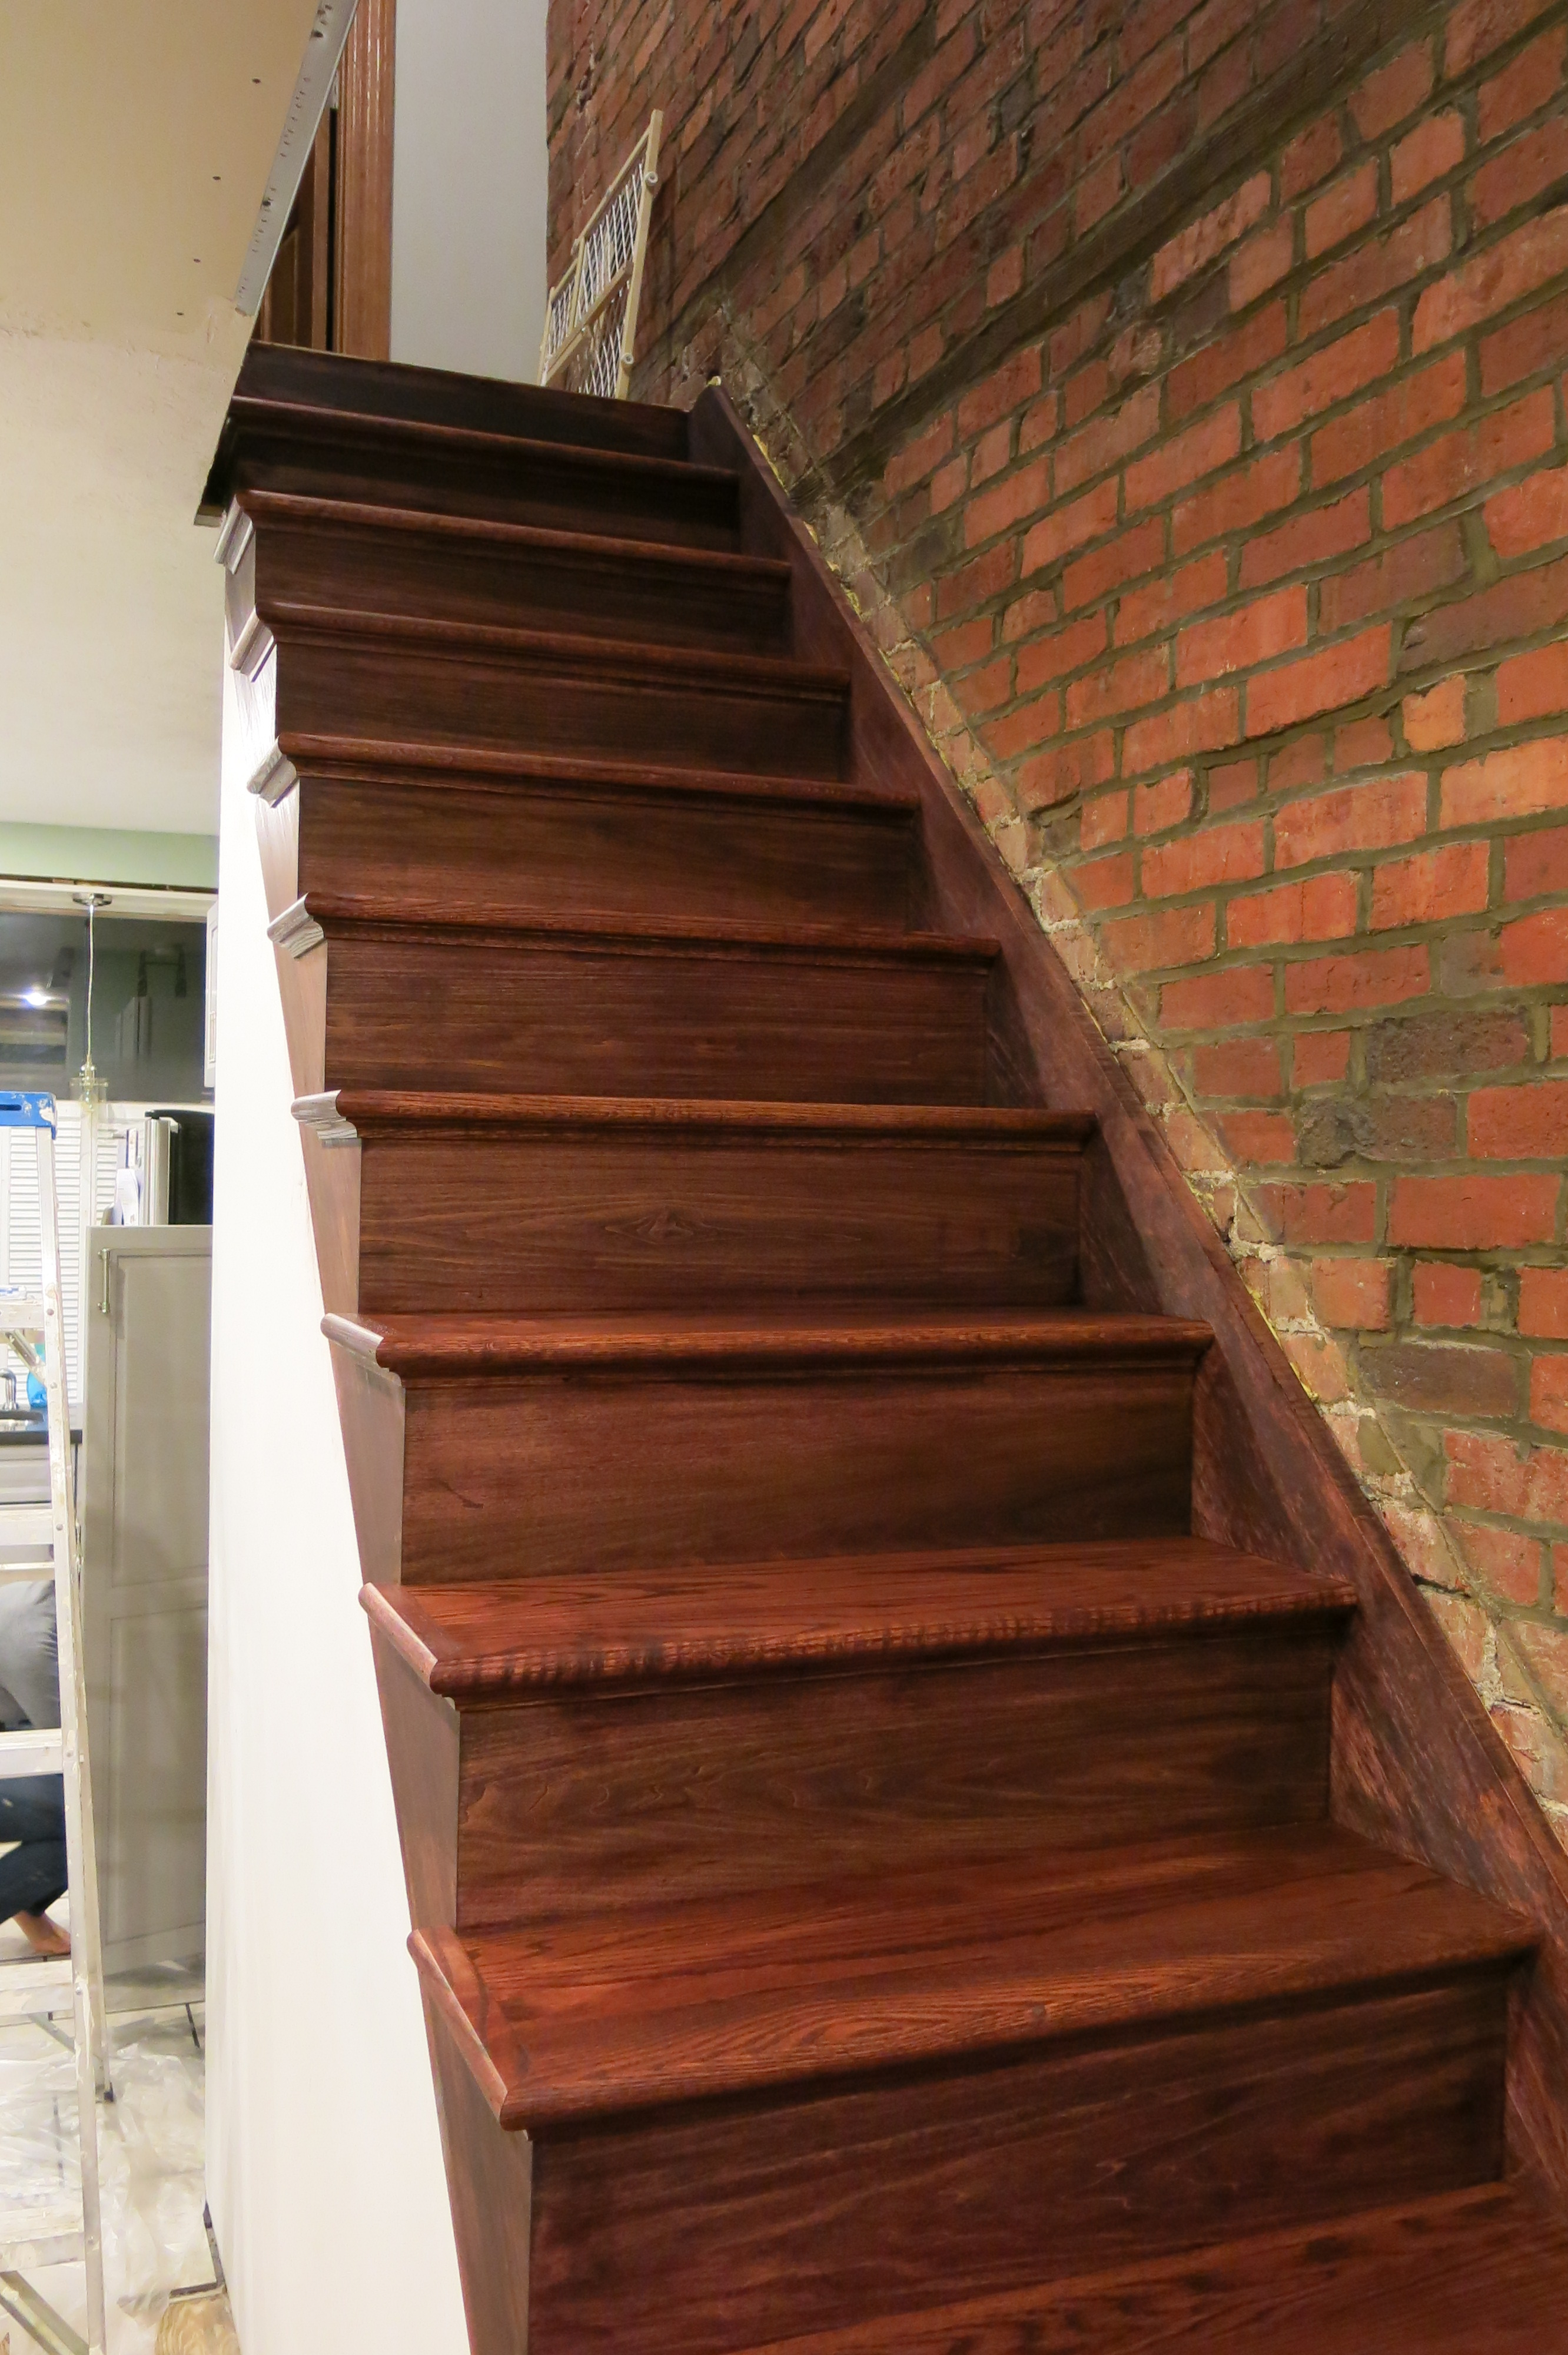 Staining The Stairs DESIGN BUILD RESIDE